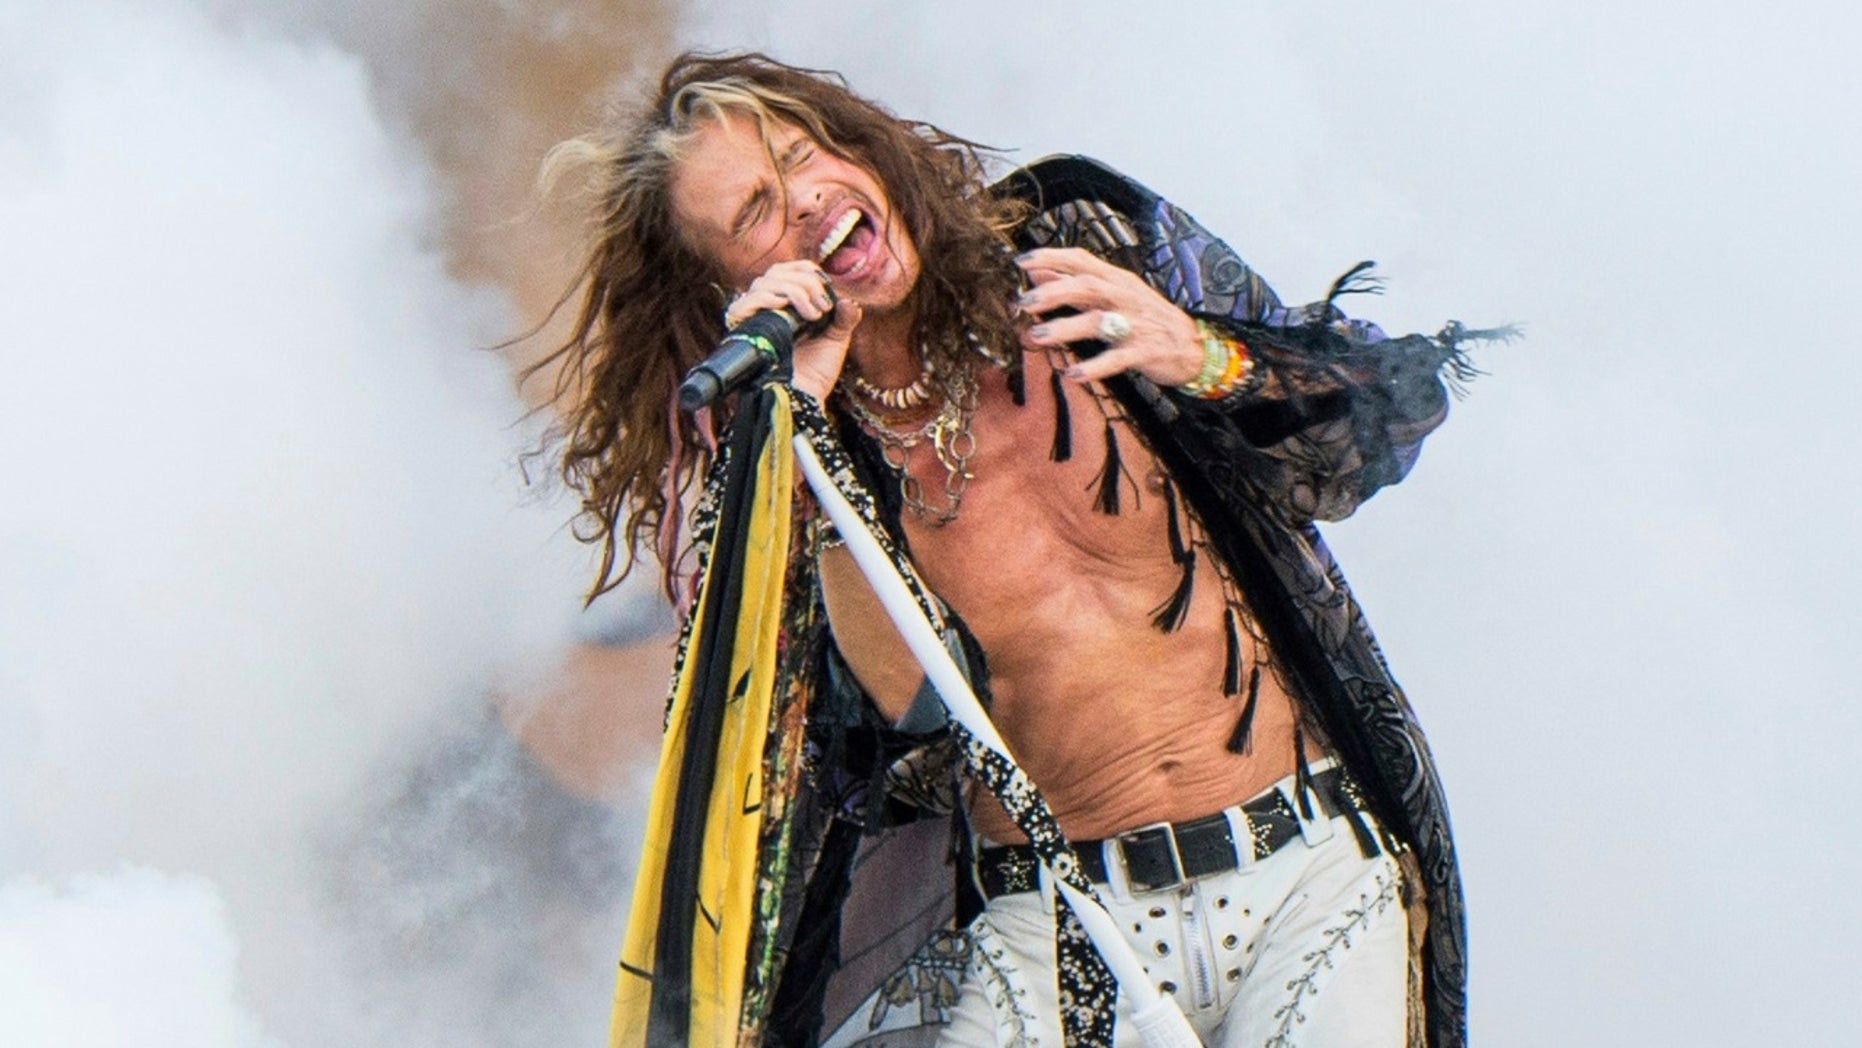 Steven Tyler's lawyer has sent a cease-and-desist letter to the White House